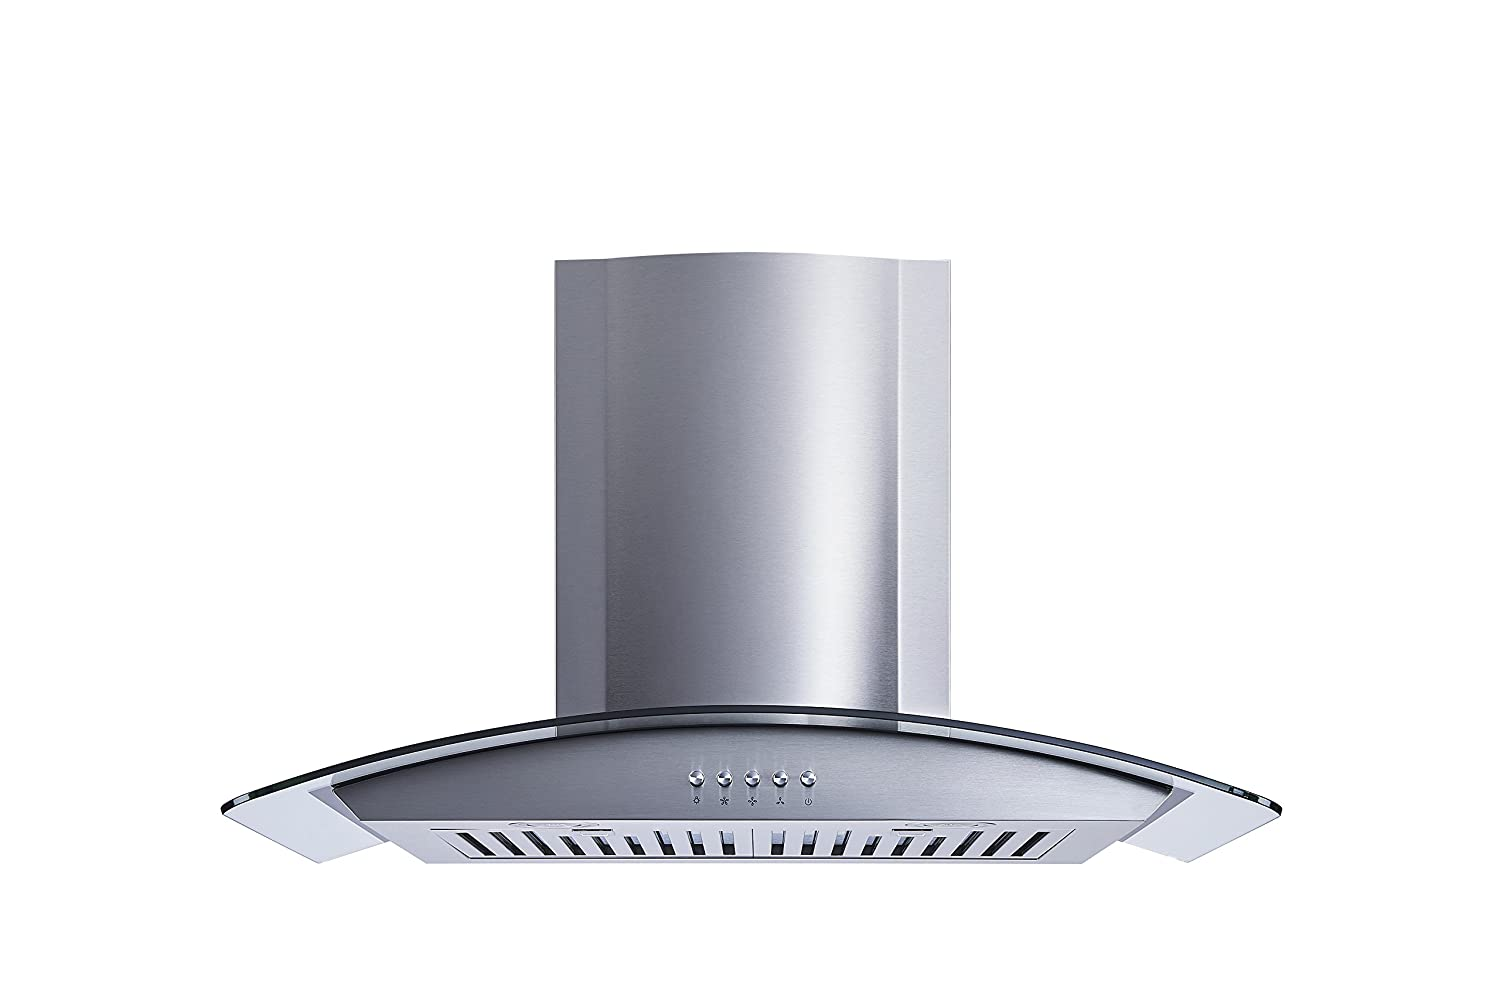 Ultra bright LED lights and Push Button 3 Speed Control Winflo New 30 Convertible Stainless Steel//Tempered Glass Wall Mount Range Hood with Stainless Steel Baffle filters